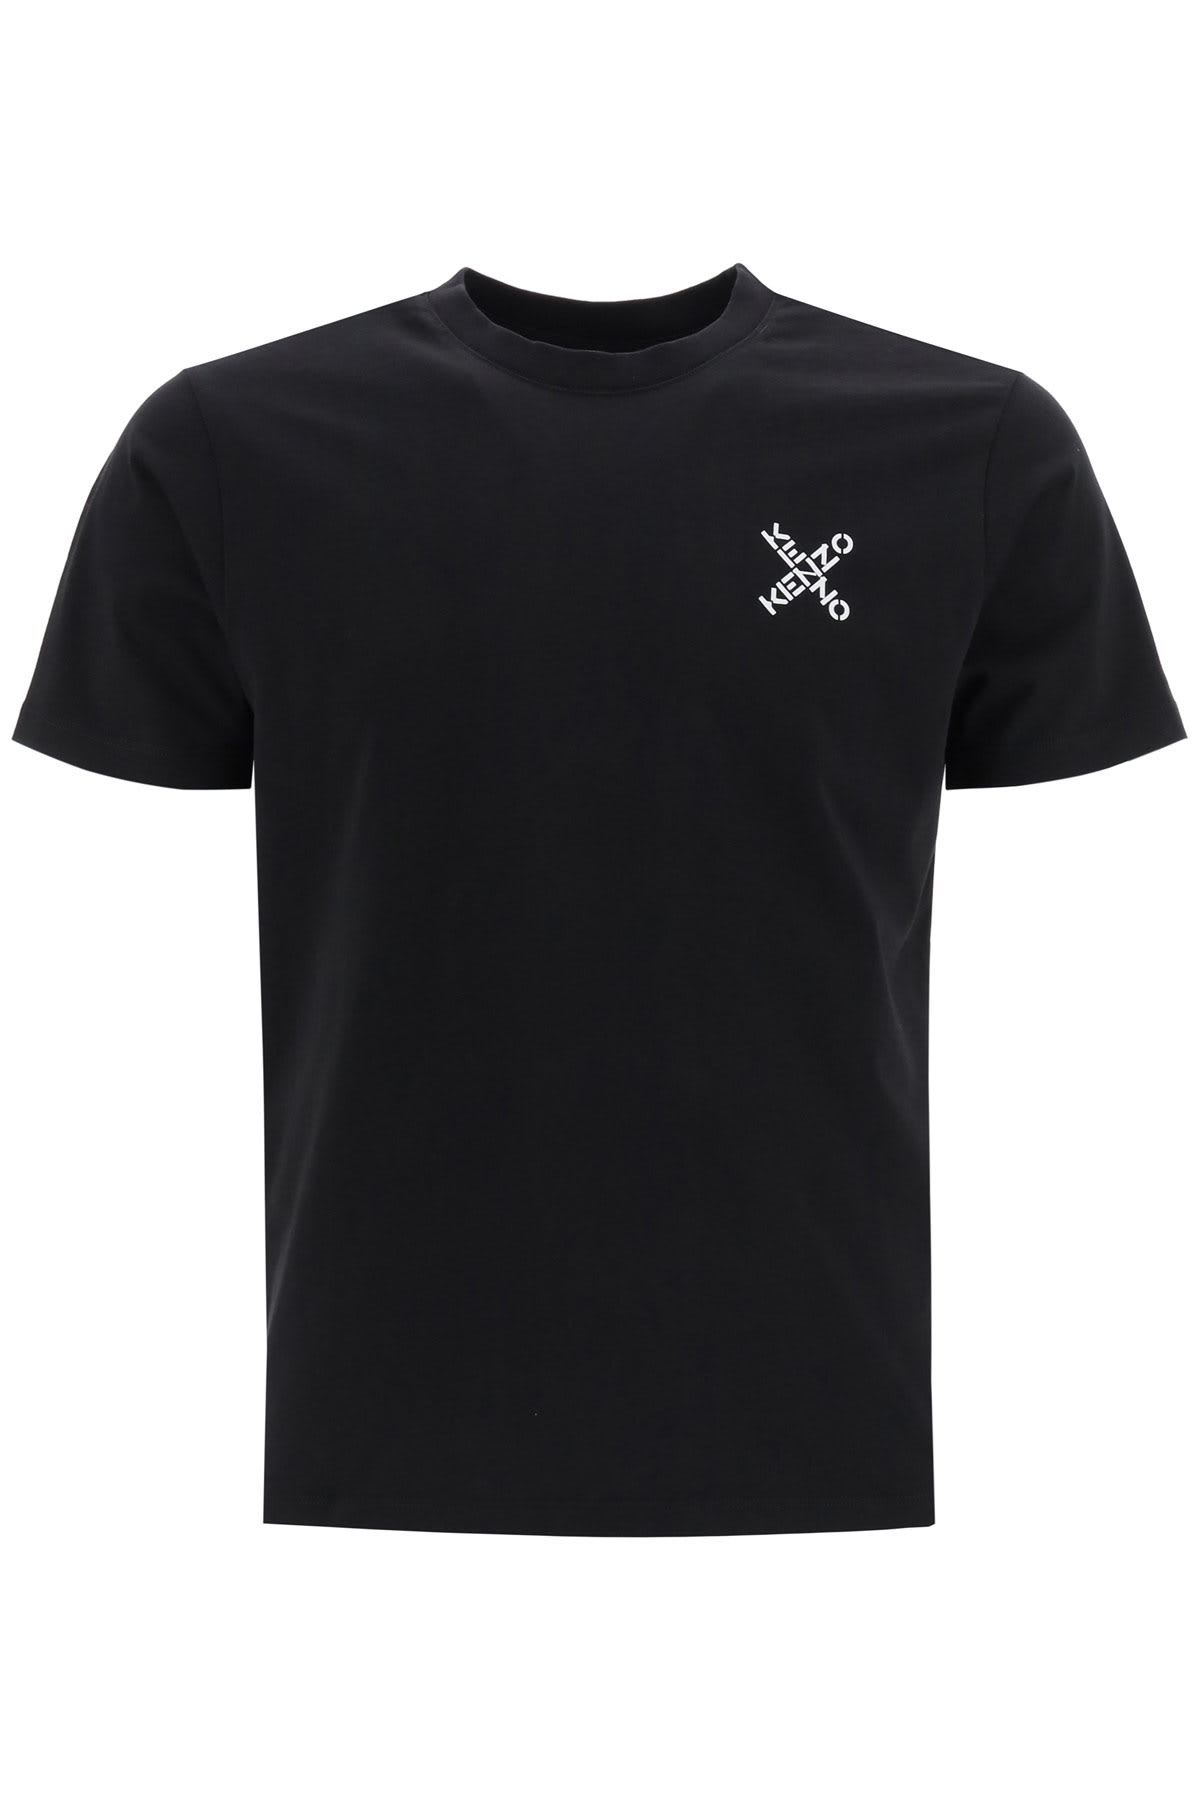 Kenzo T-SHIRT WITH CROSSED LOGO